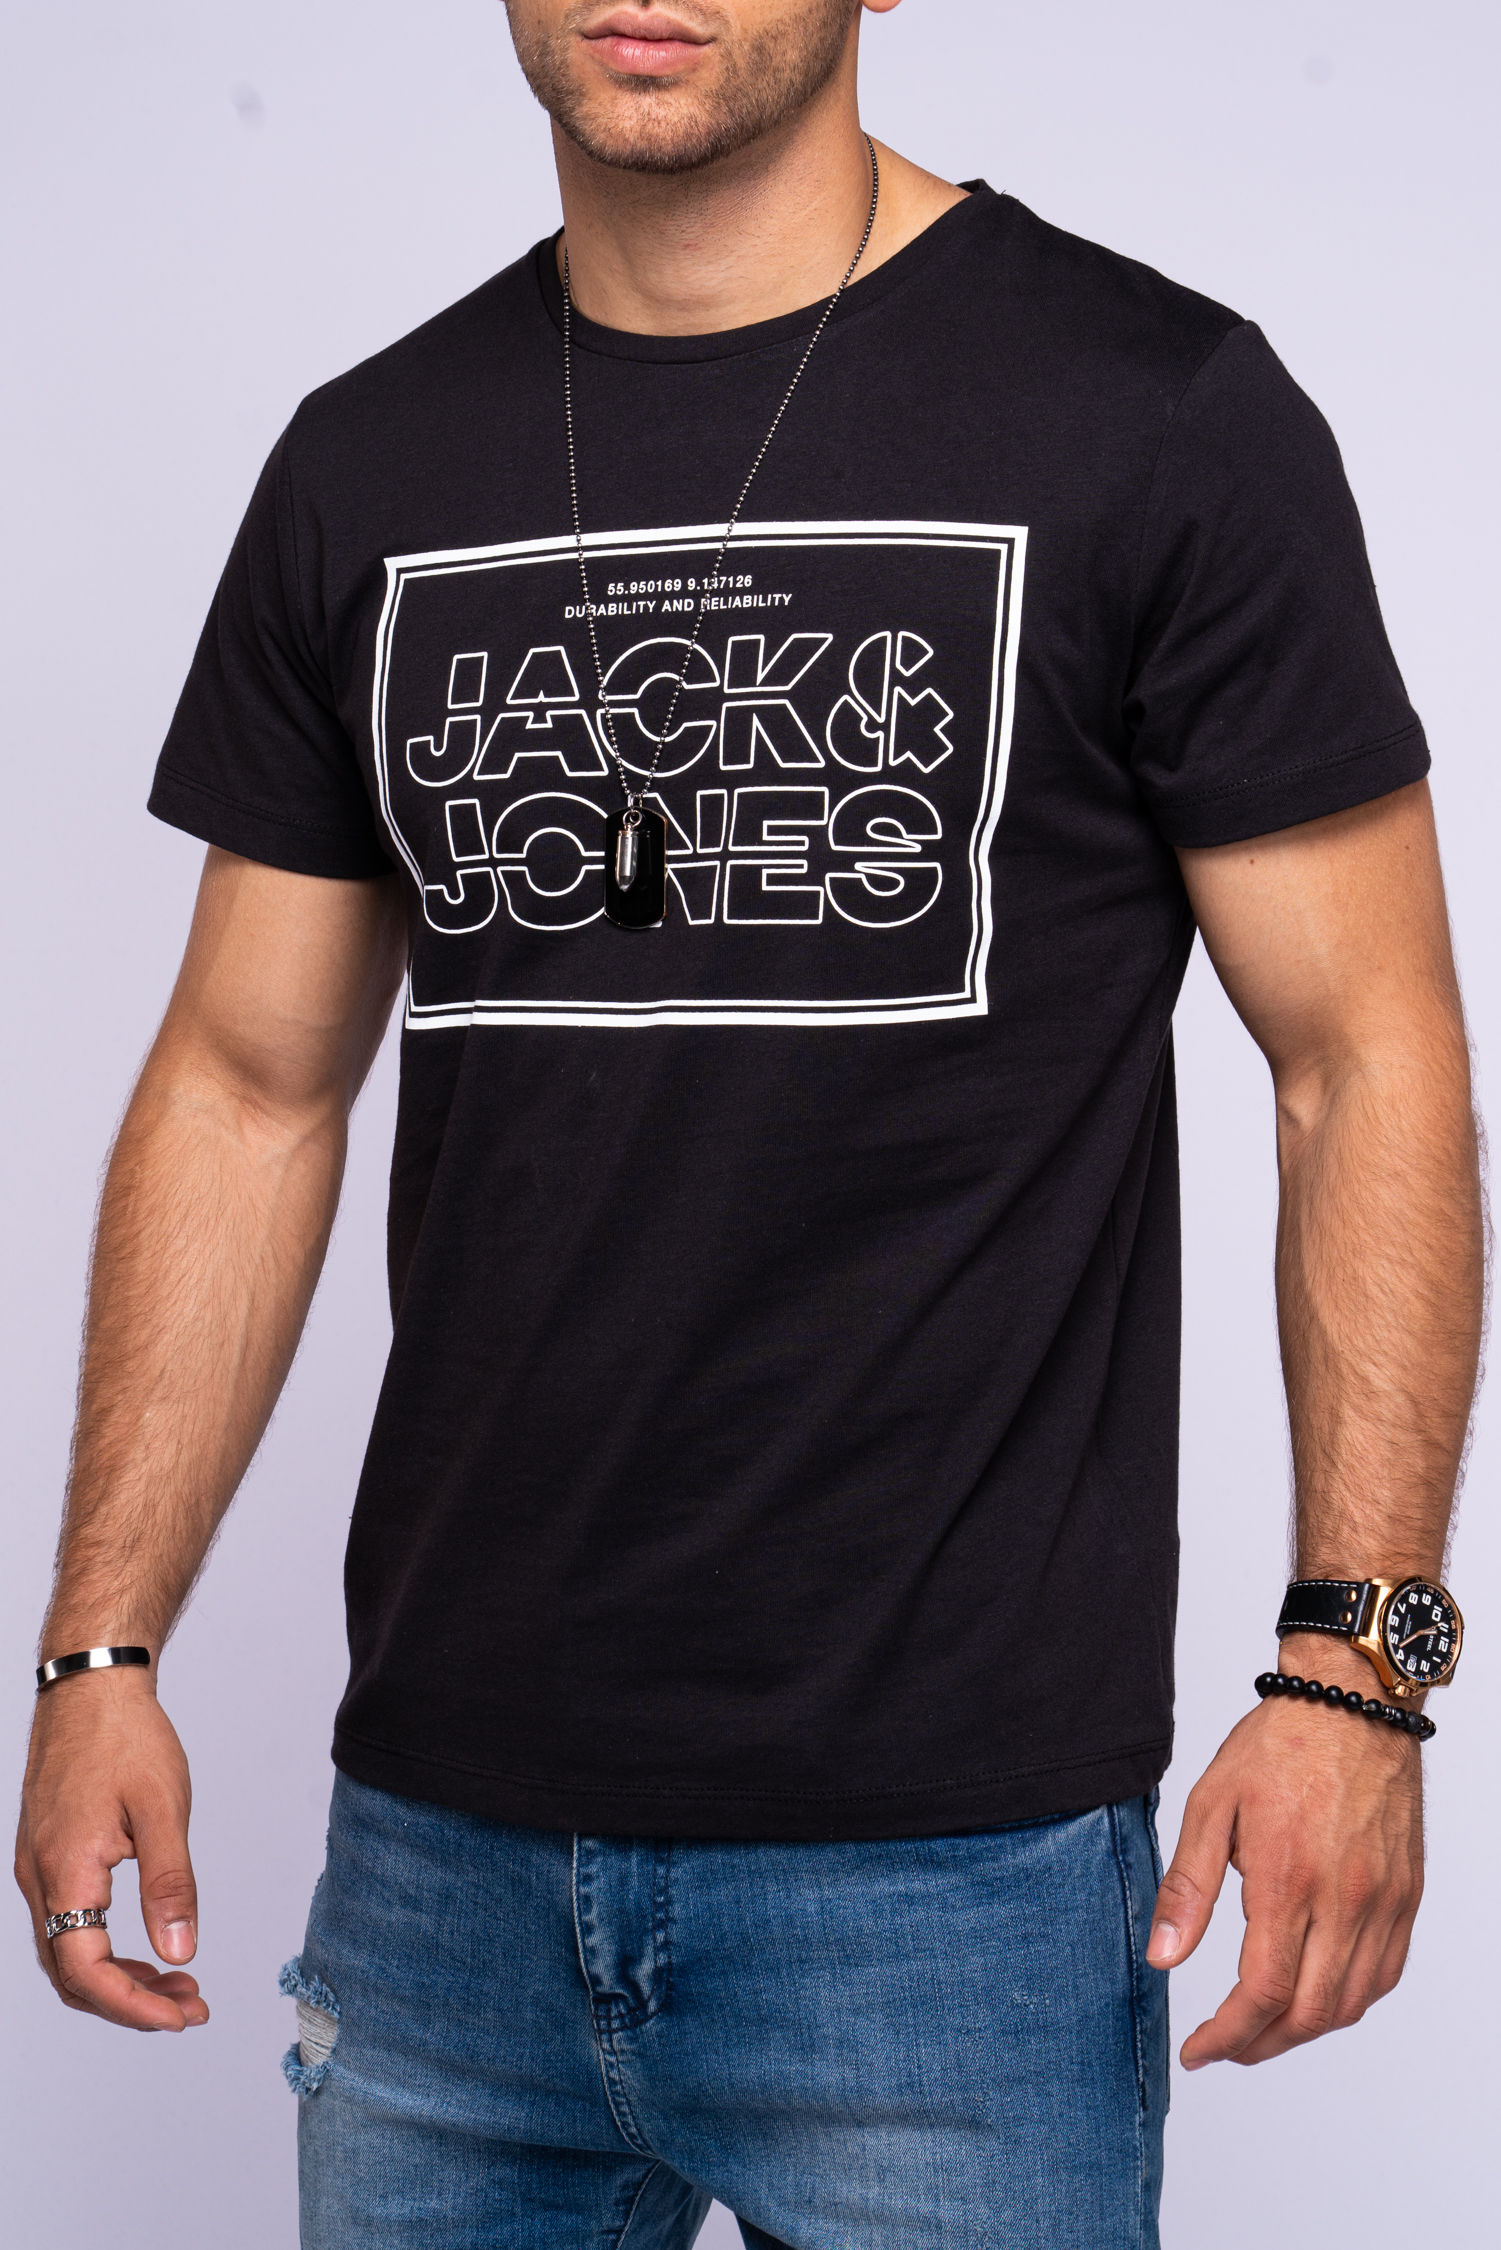 Jack-amp-Jones-T-shirt-Hommes-Logo-Print-manches-courtes-Shirt-Casual-Streetwear-shirt-Top miniature 3